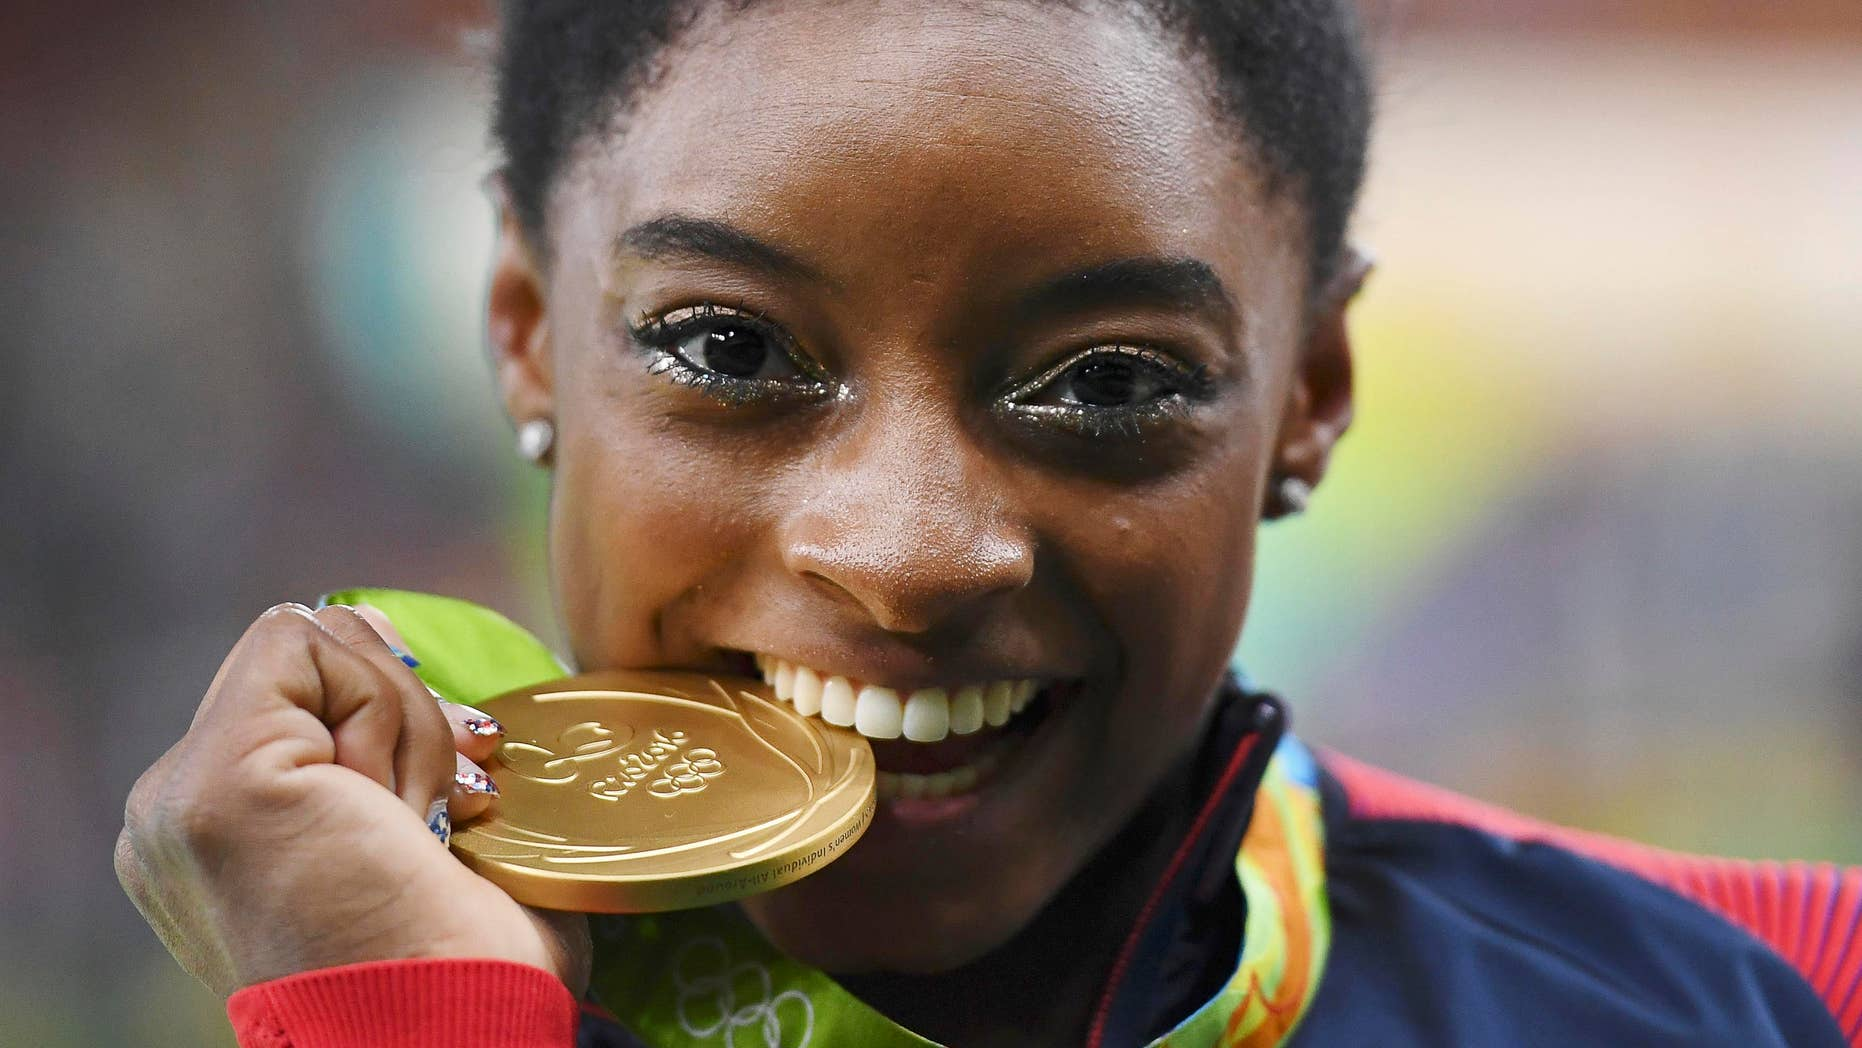 2016 Rio Olympics - Artistic Gymnastics - Victory Ceremony - Women's Individual All-Around Victory Ceremony - Rio Olympic Arena - Rio de Janeiro, Brazil - 11/08/2016. Simone Biles (USA) of USA bites her gold medal on the podium after winning the women's individual all-around final. REUTERS/Dylan Martinez TPX IMAGES OF THE DAY. FOR EDITORIAL USE ONLY. NOT FOR SALE FOR MARKETING OR ADVERTISING CAMPAIGNS. - RTSMS3U